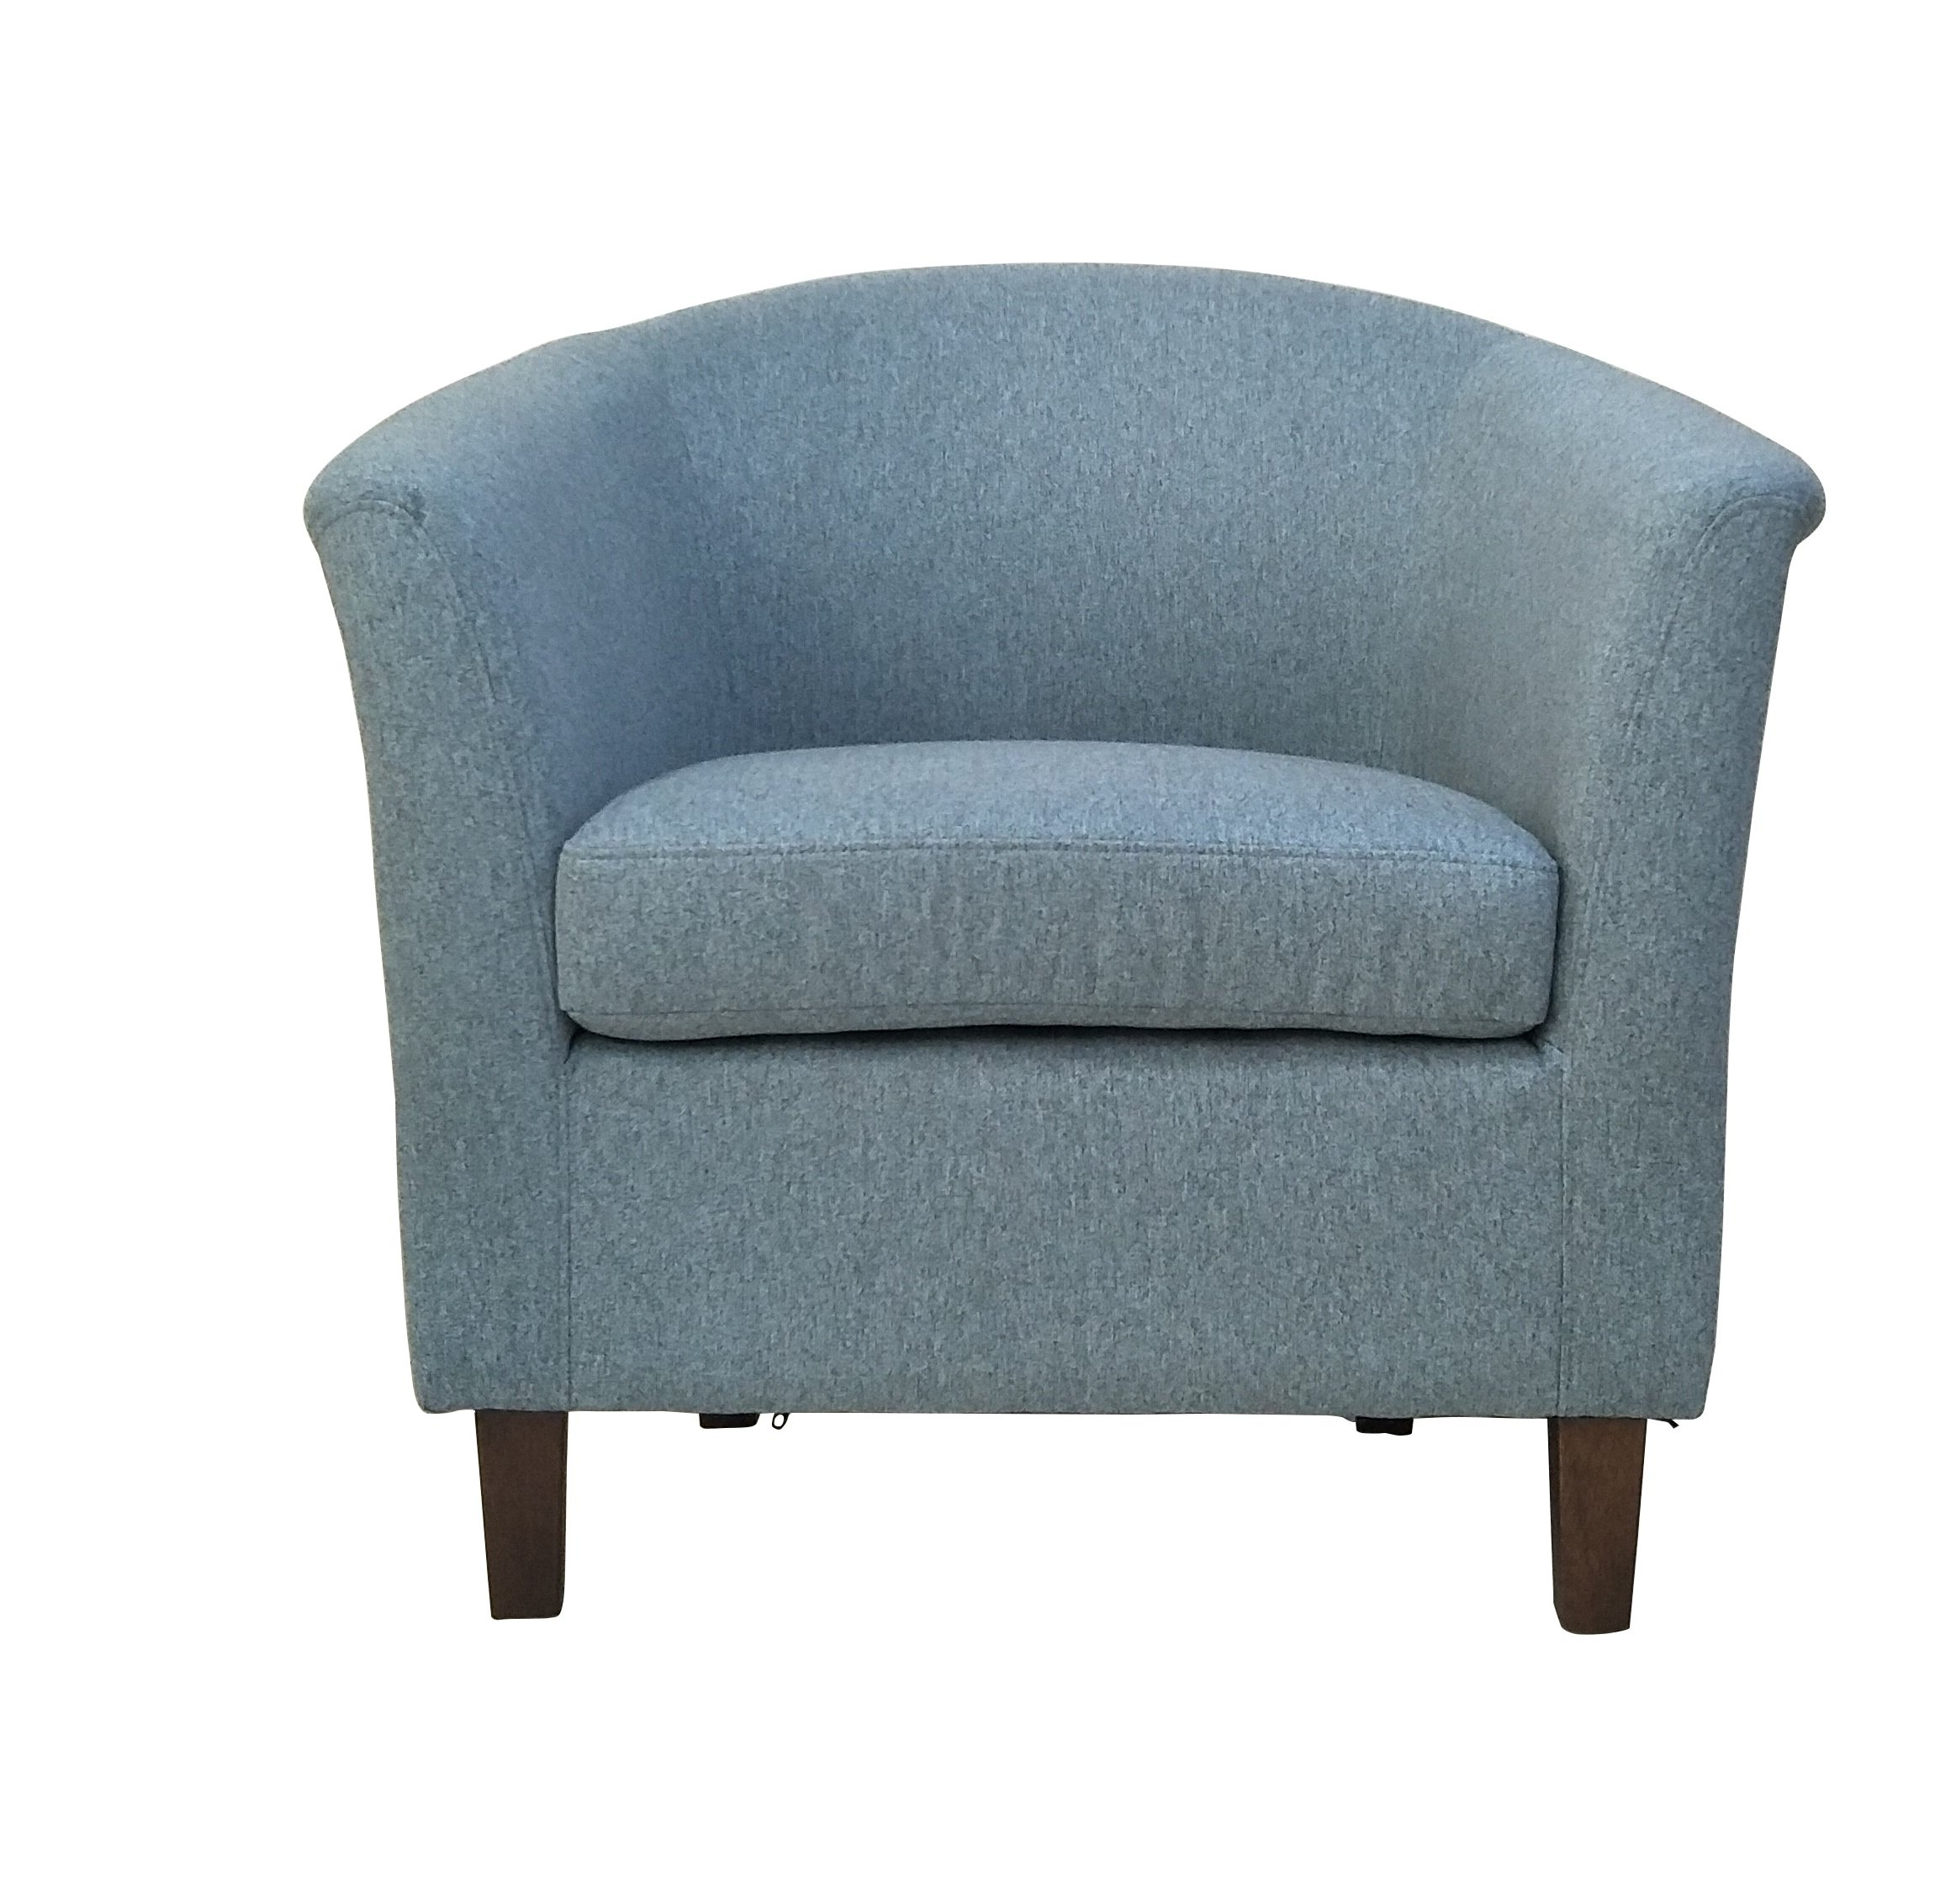 Bronaugh Barrel Chairs For Preferred Hooksett Barrel Chair (View 12 of 20)